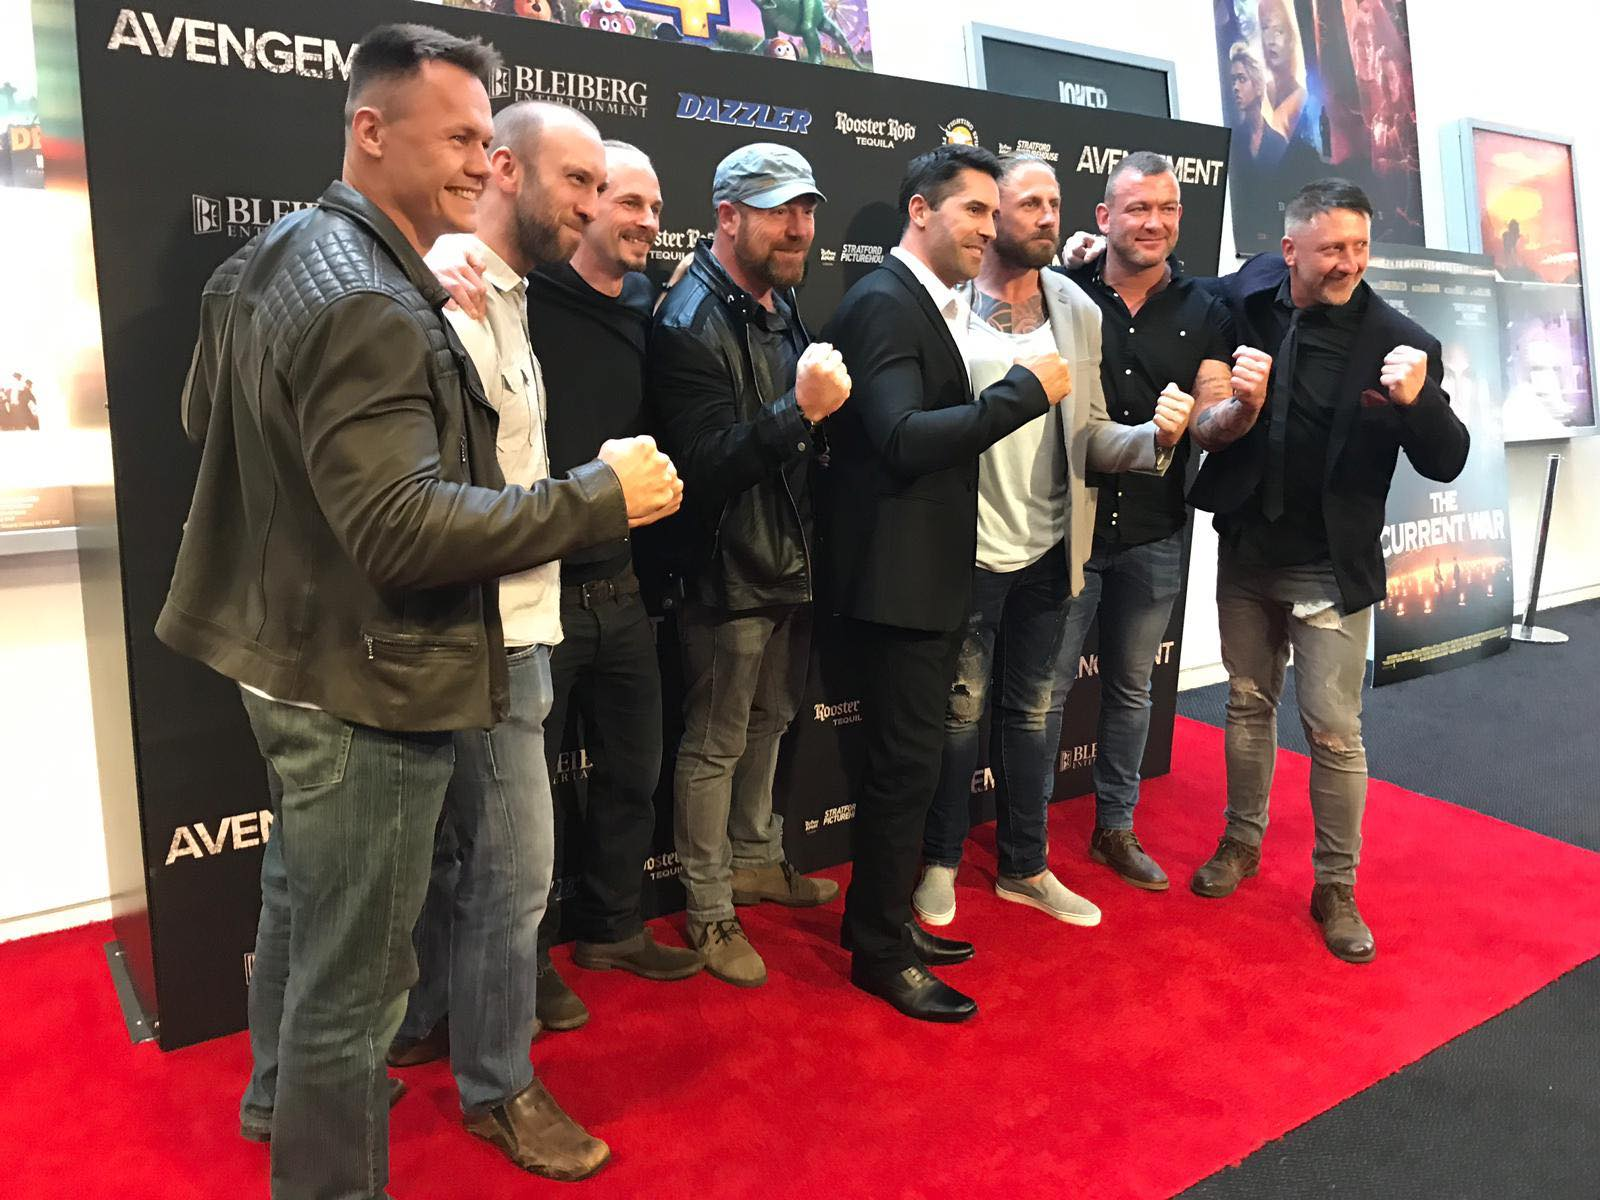 Justin Sysum (left) with other cast members and crew from Avengement at the film premiere